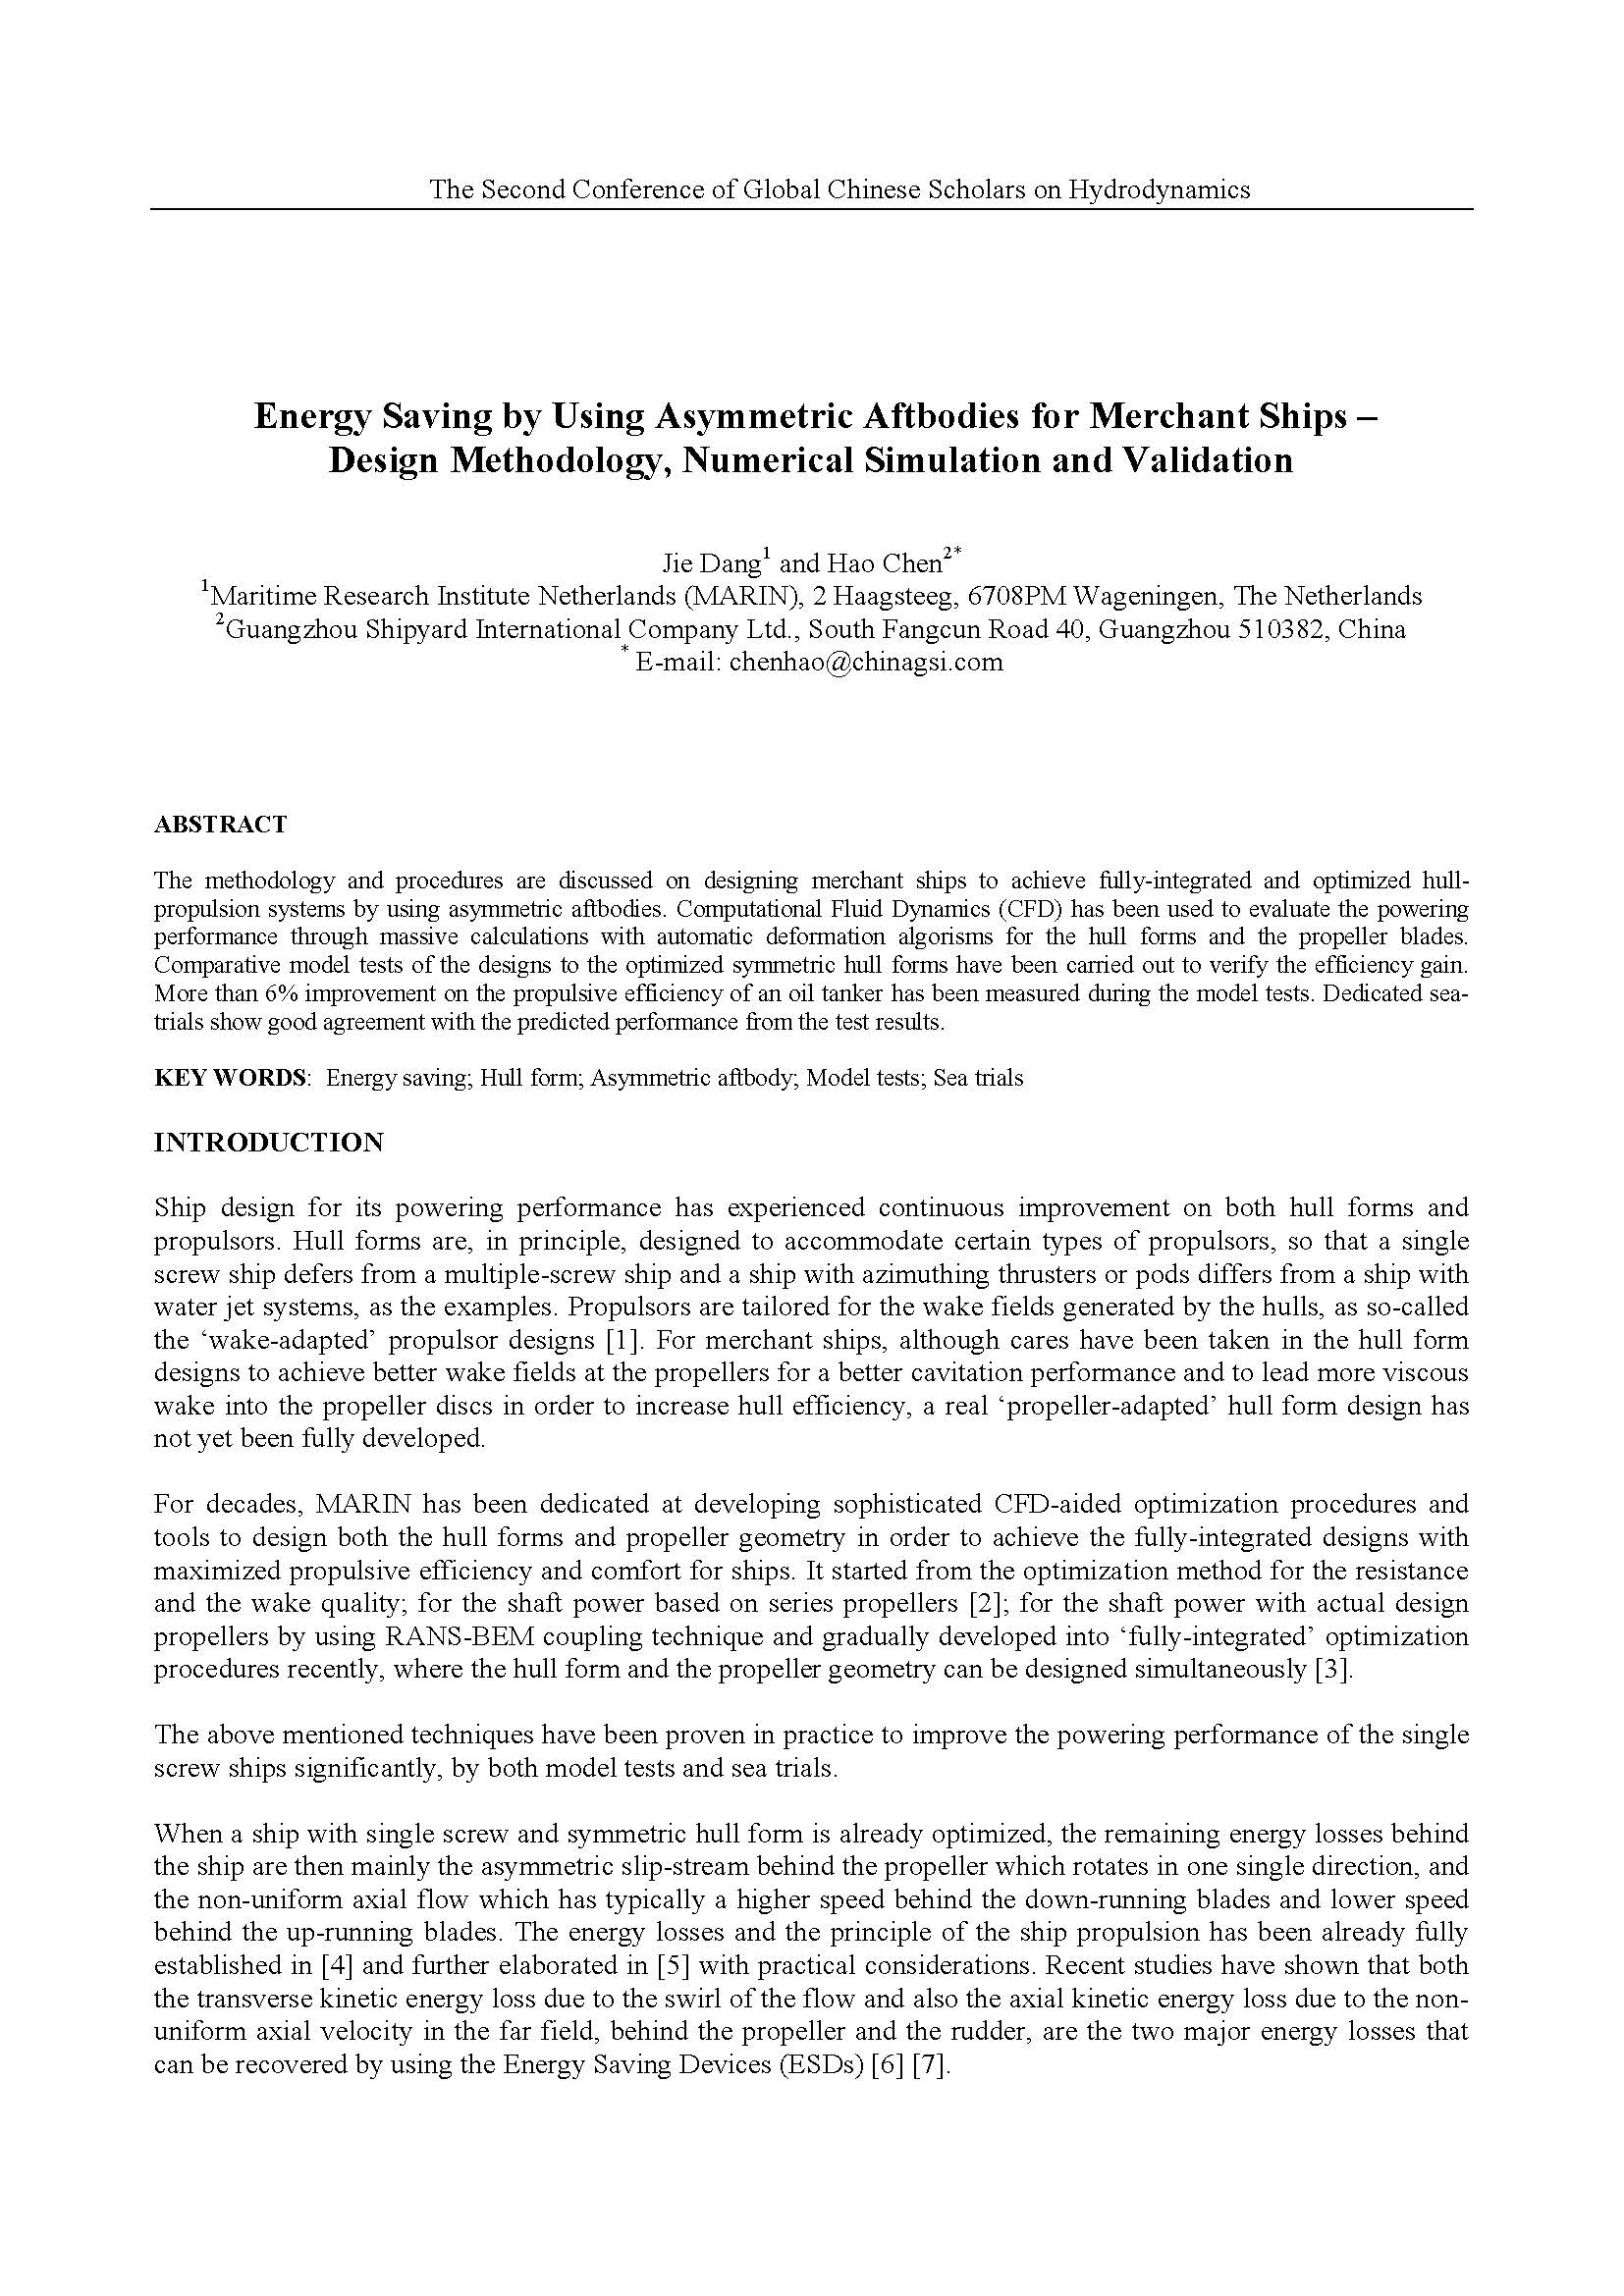 Energy Saving by Using Asymmetric Aftbodies for Merchant Ships – Design Methodology, Numerical Simulation and Validation